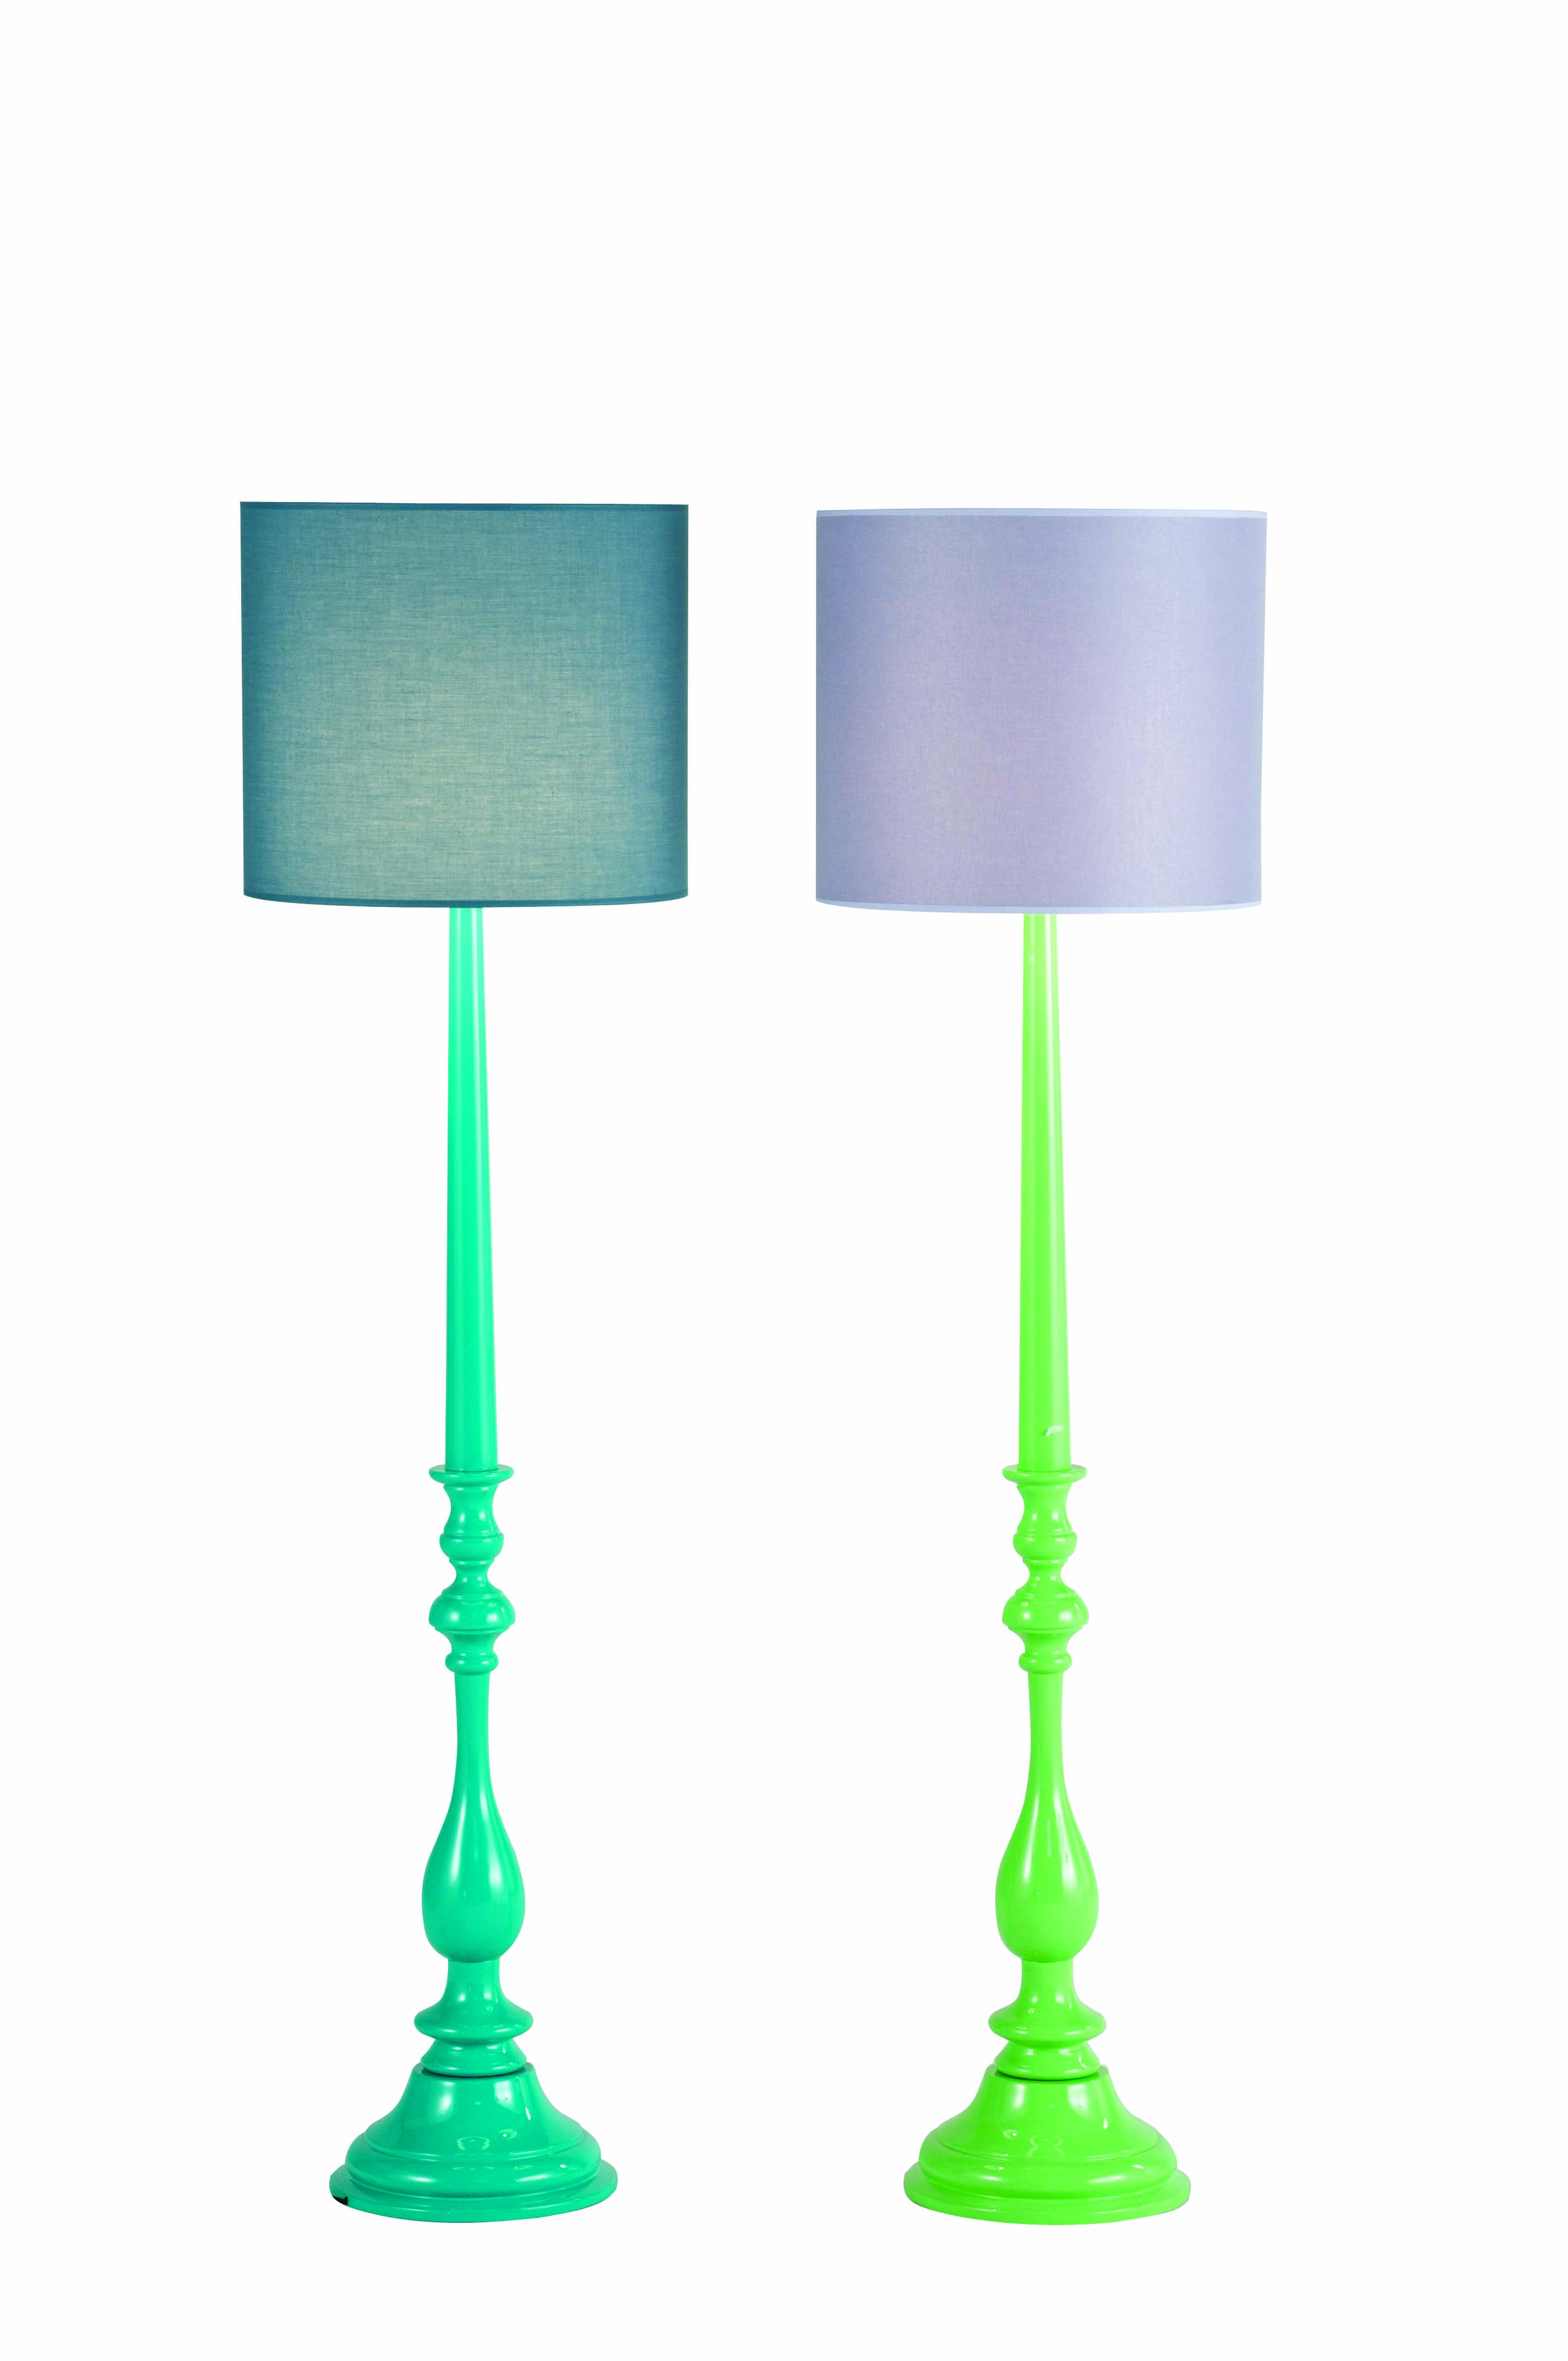 Roche Bobois Gatsby Lamp And Floorlamp Design Pierre Dubois And